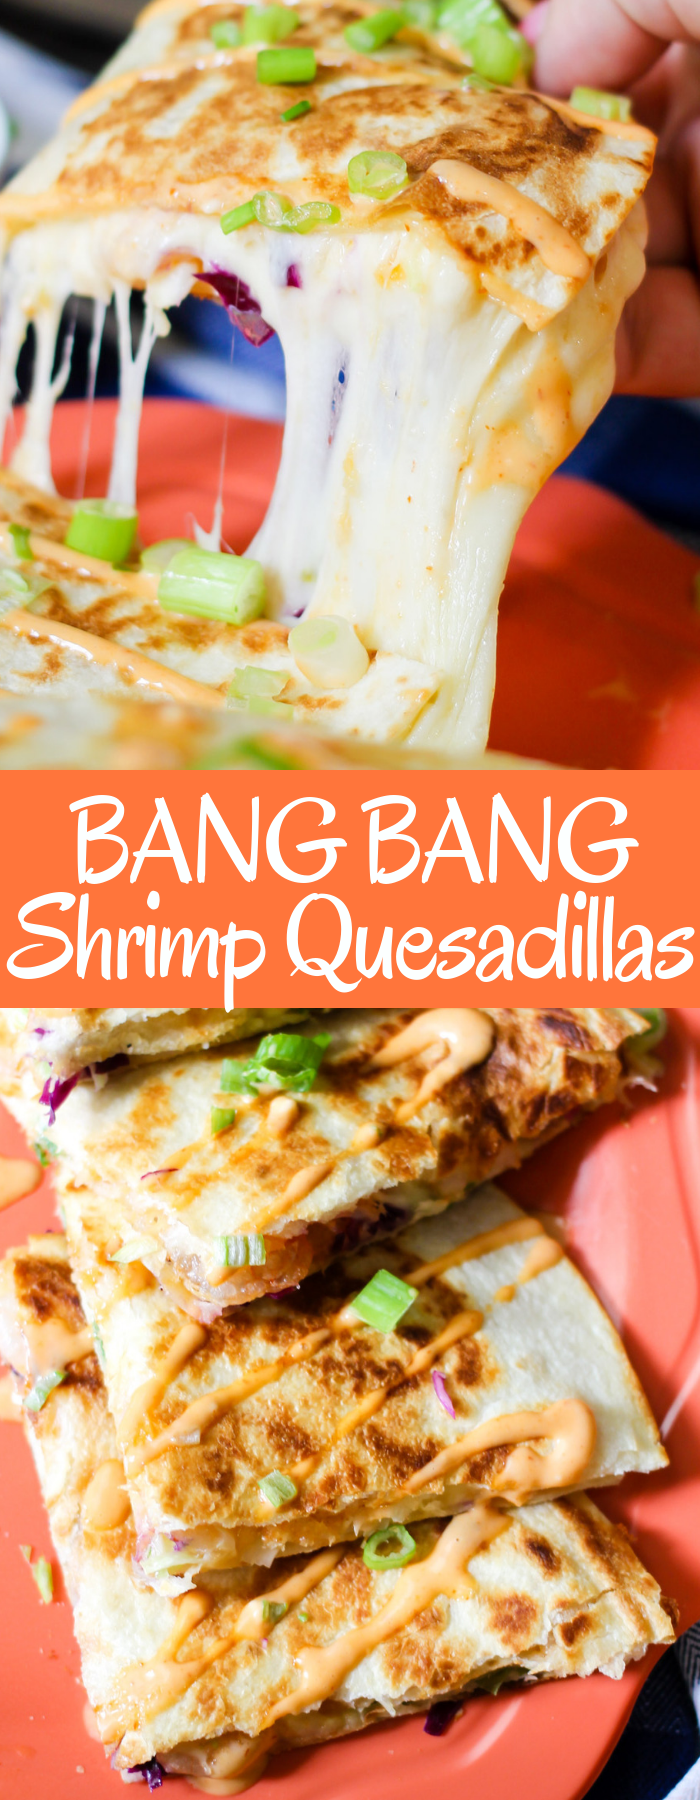 Shrimp, sweet & spicy bang bang sauce, cheese, and slaw all grilled between tortillas make these Bang Bang Shrimp Quesadillas the perfect meal or appetizer!